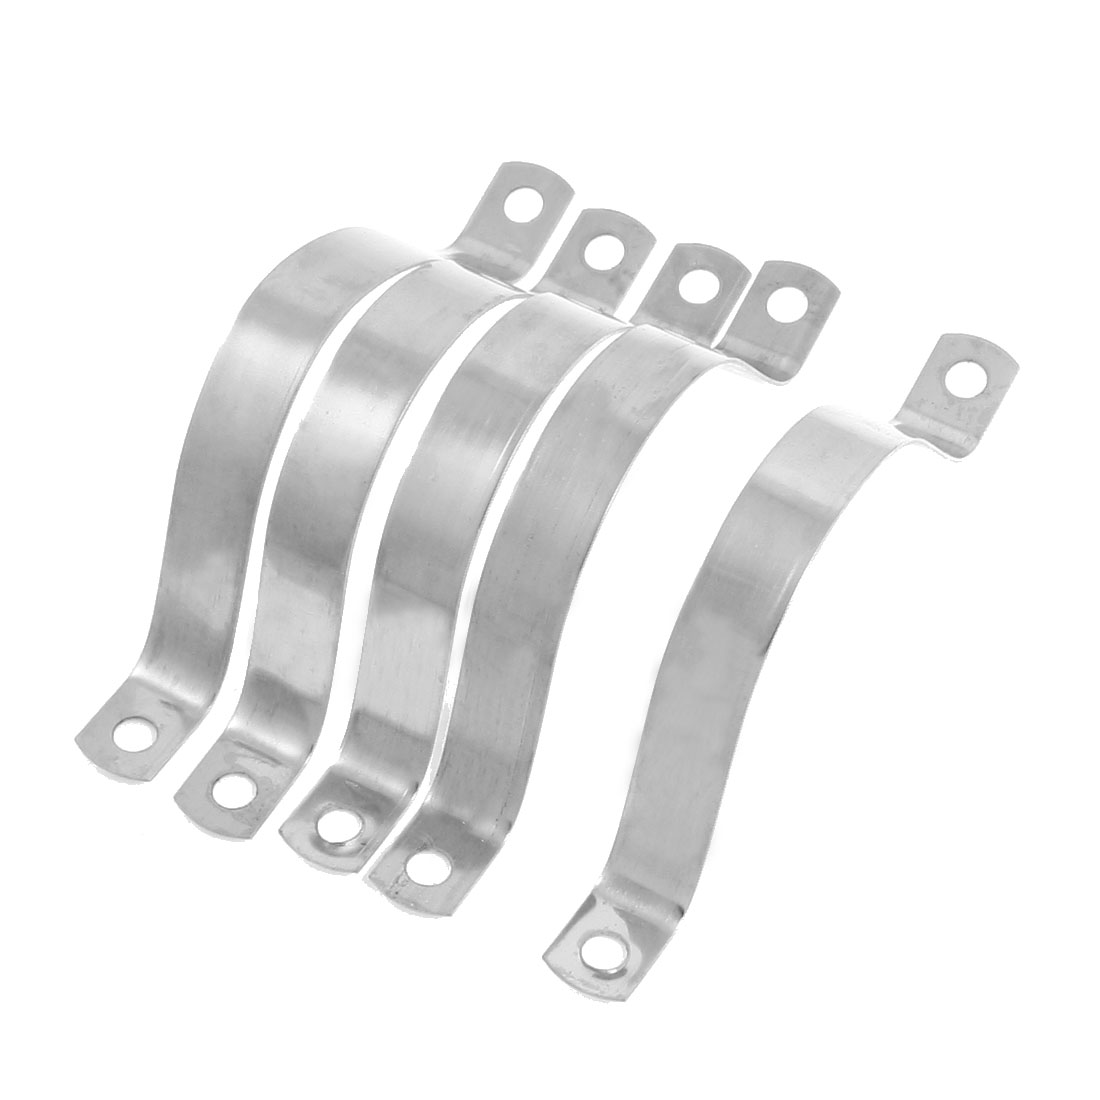 "5 Pcs Silver Tone Stainless Steel Clamp Holder for 1.5"" Diameter Pipe"